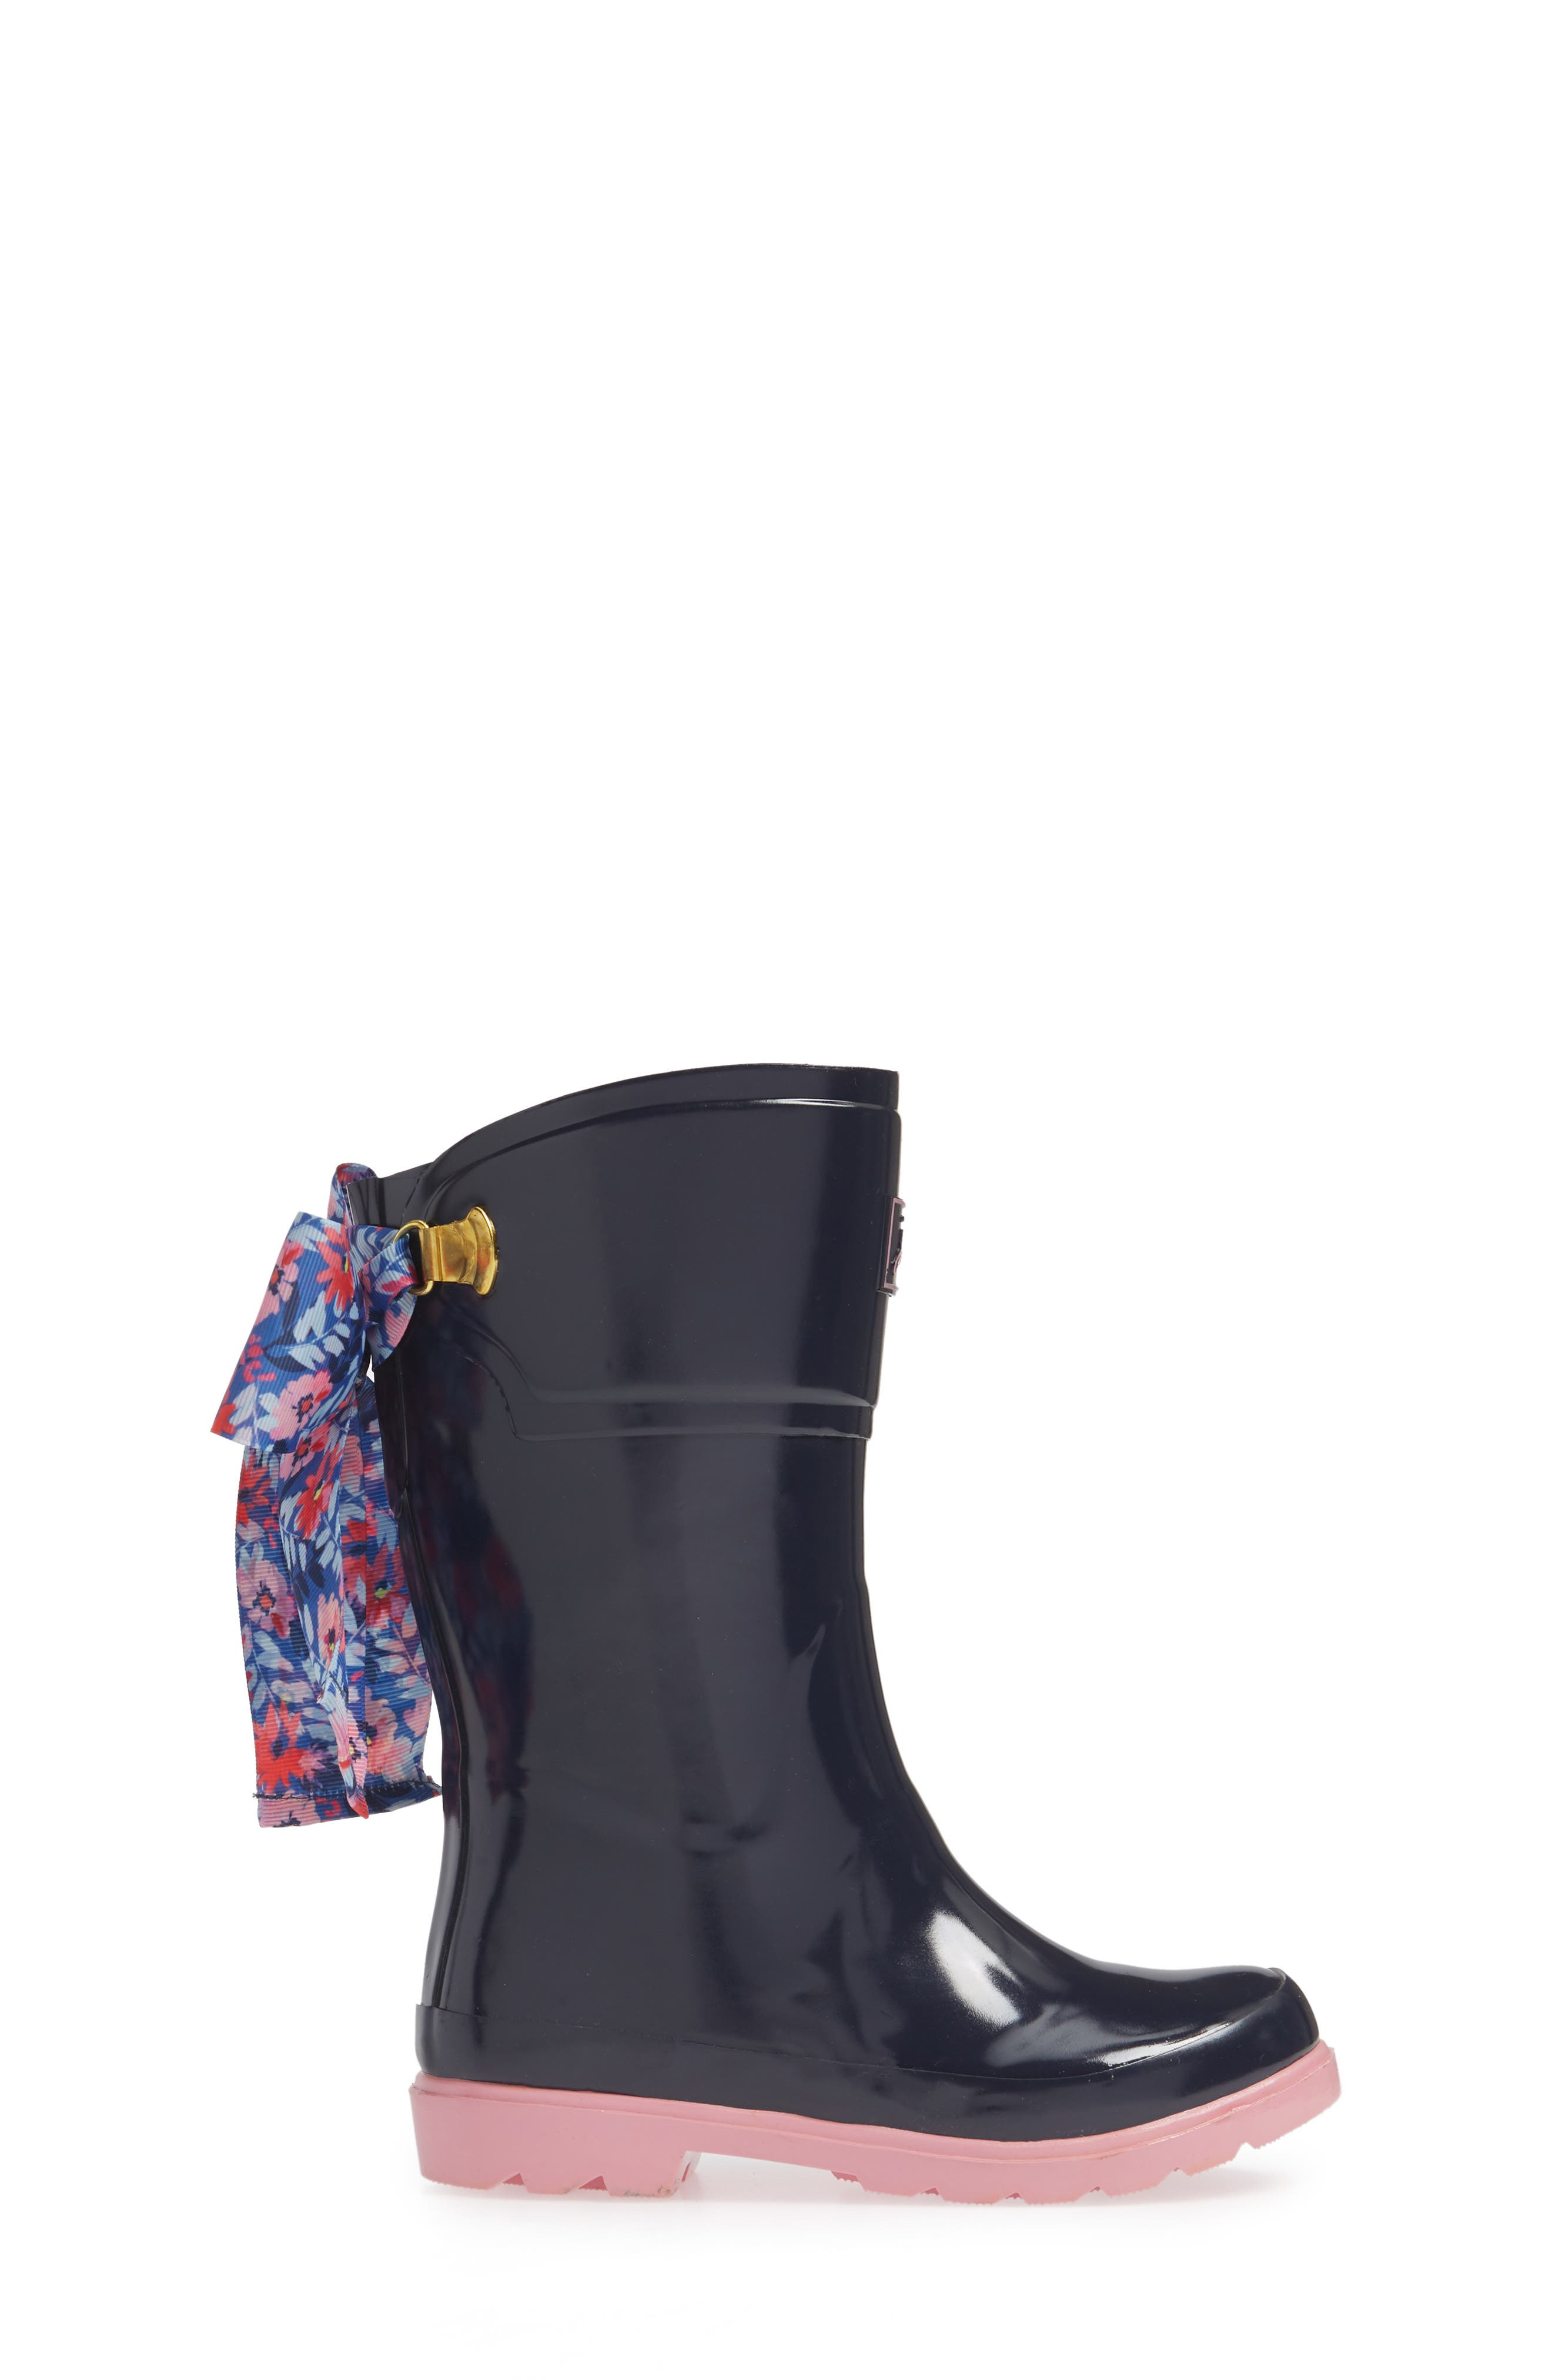 Bow Welly Waterproof Rain Boot,                             Alternate thumbnail 3, color,                             FRENCH NAVY